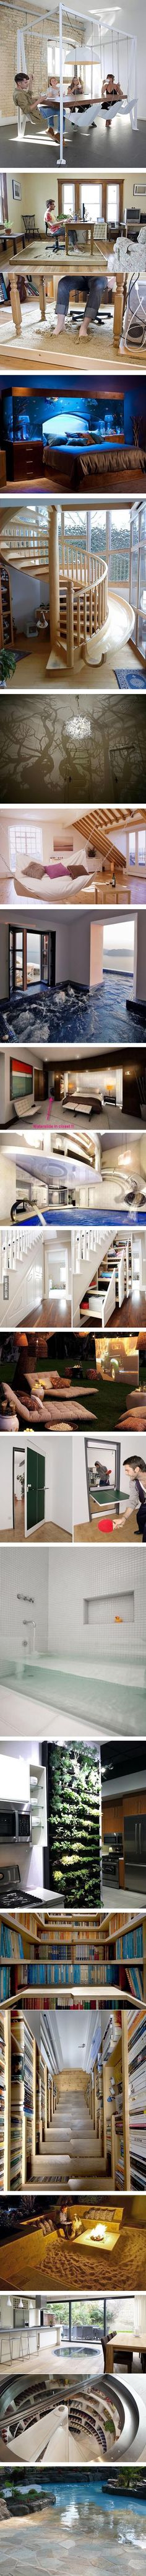 View 18 home ideas that are extremely awesome On Just DWL Viral Media